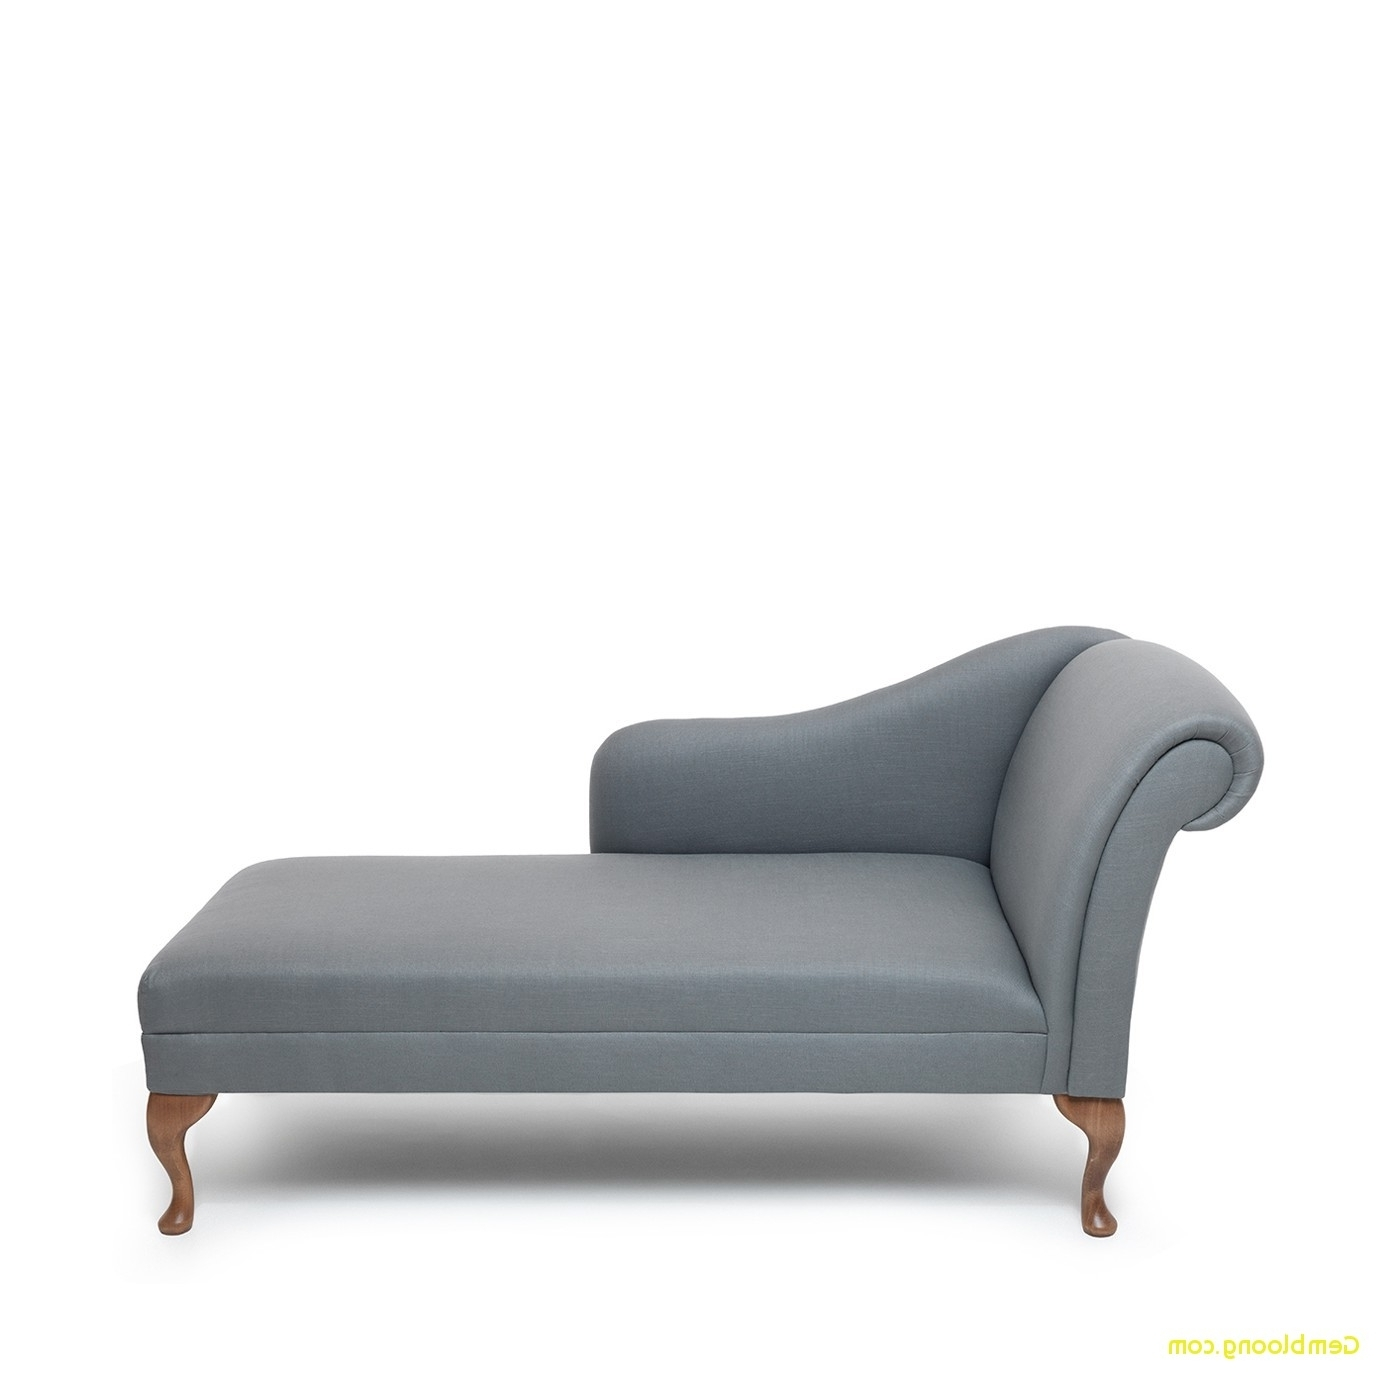 Grey Chaise Lounge Inspirational Garbo Linen Chaise Longue Soft With Current Linen Chaise Lounges (View 1 of 15)